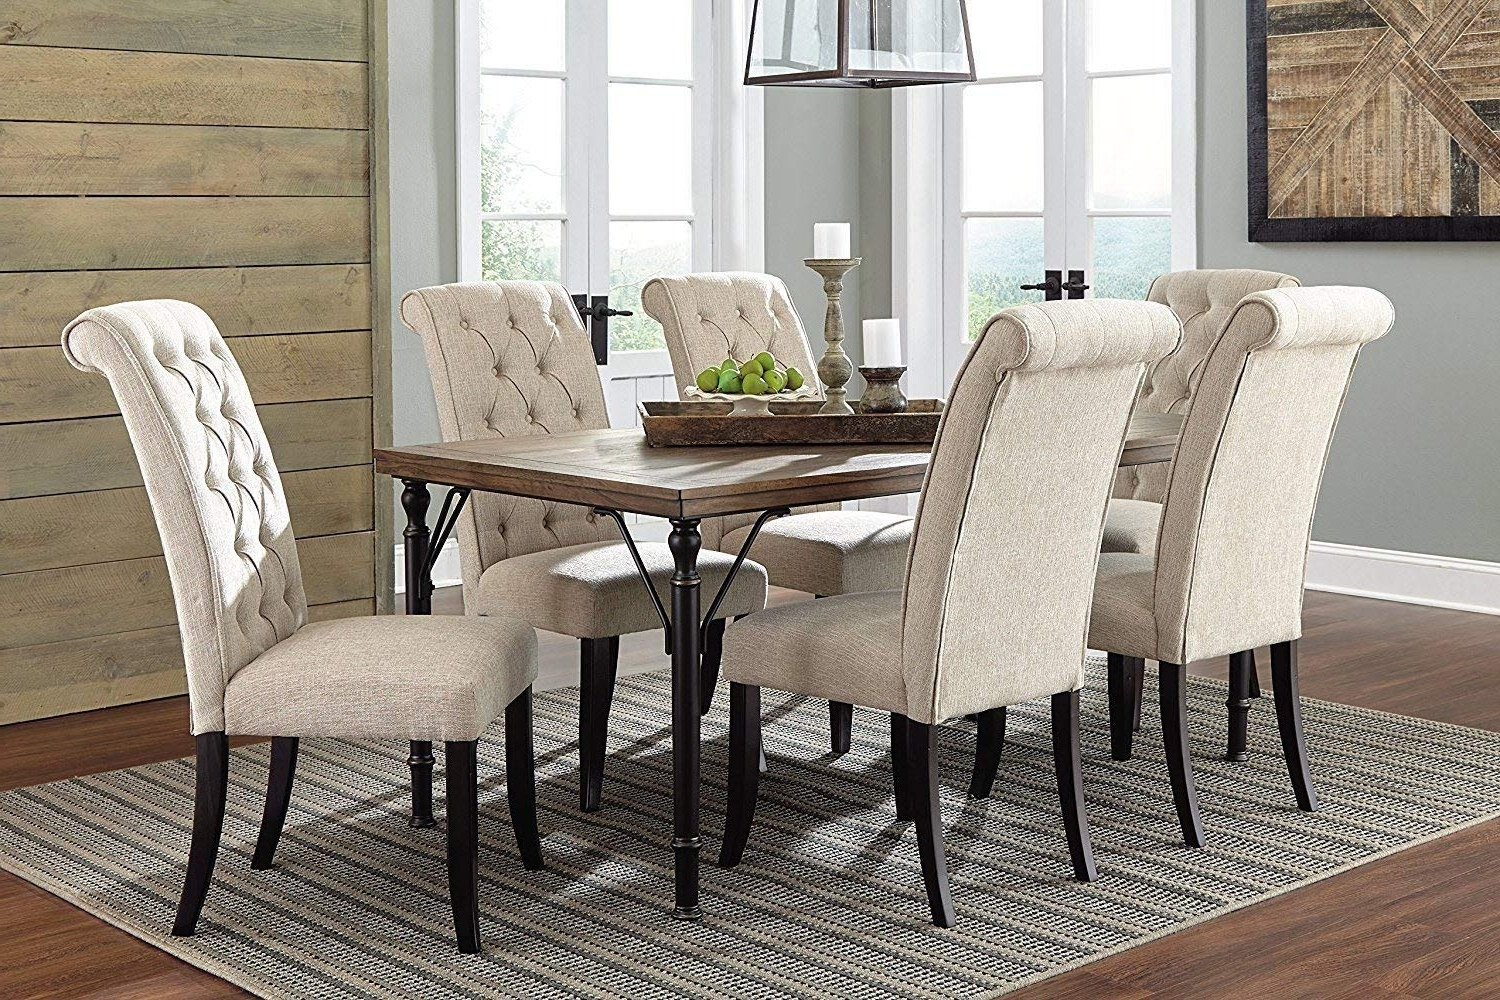 Preferred Market 6 Piece Dining Sets With Host And Side Chairs With Amazon – Ashley Furniture Signature Design – Tripton Dining Room (View 17 of 25)